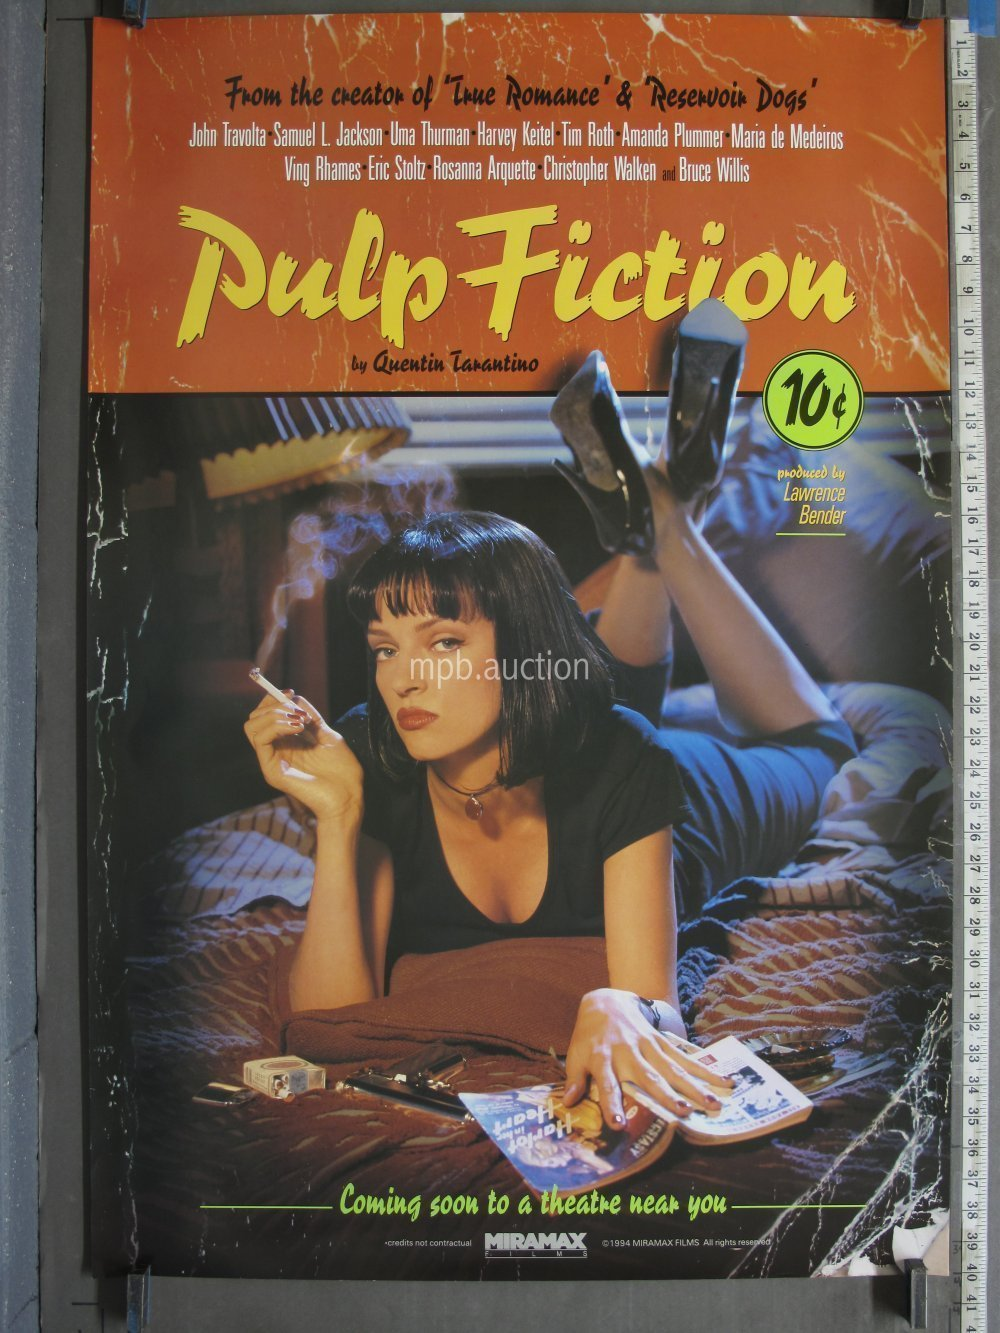 Pulp Fiction 1994 Lucky Strikes Original Movie Poster For Sale